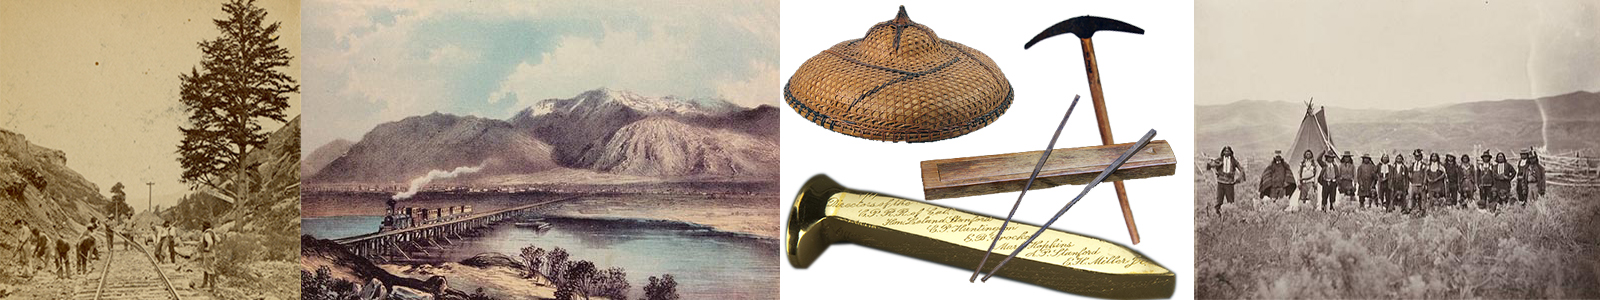 Banner showing objects and images including a stereocard of the 1000 mile tree, watercolor of the line crossing the Platte river, Chinese-American coolie hat, replica of the Golden Spike, pickaxe, and a photograph of the Shoshone Indians